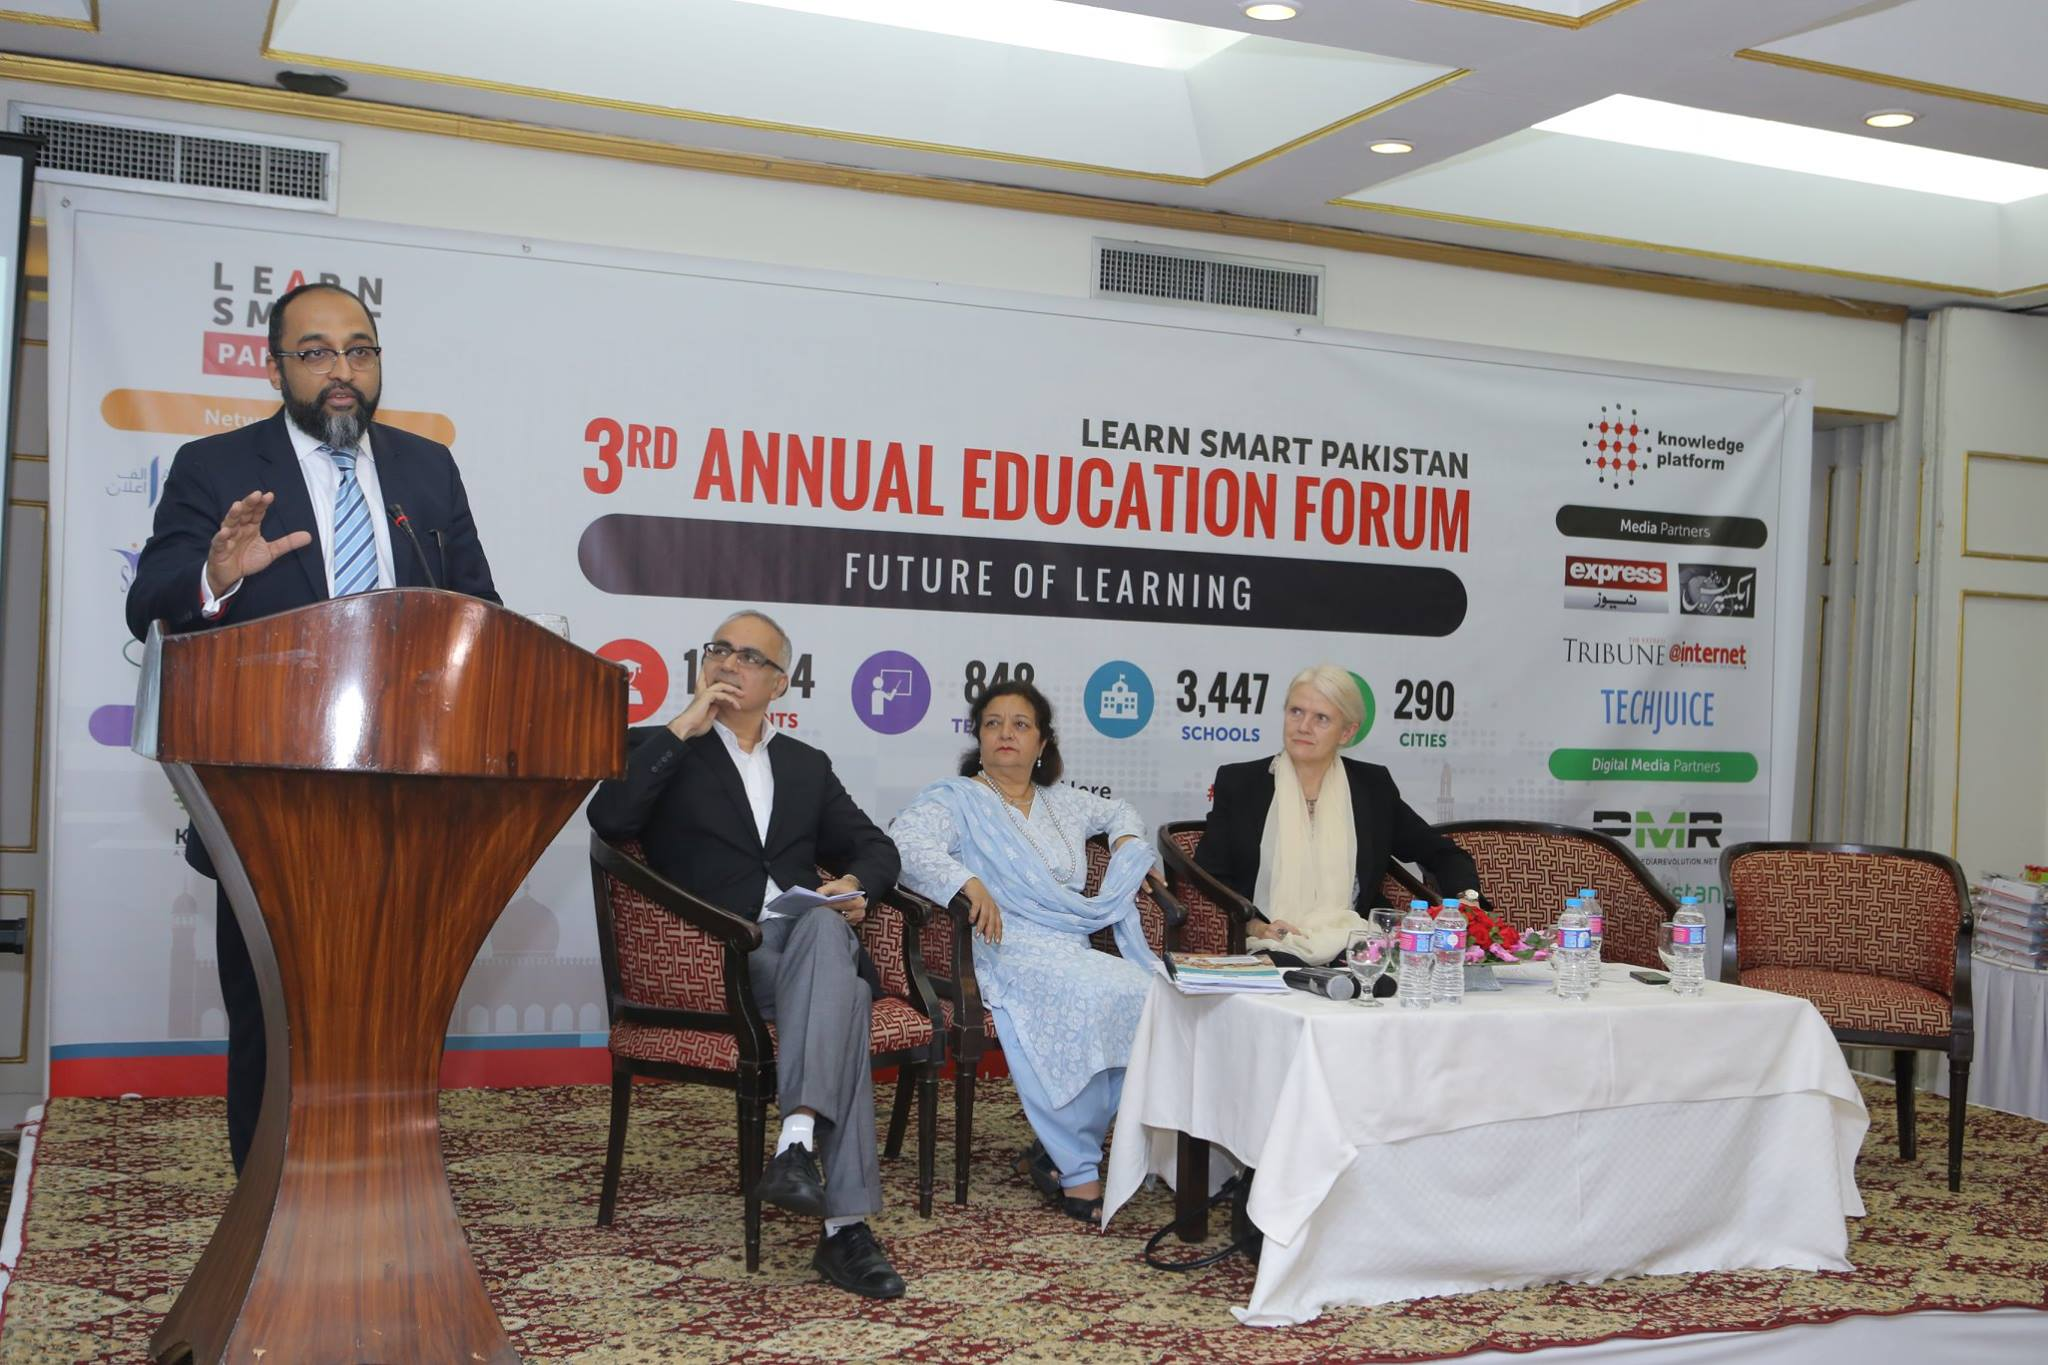 www learnsmartpakistan org - /content/images/lsp/gallery/